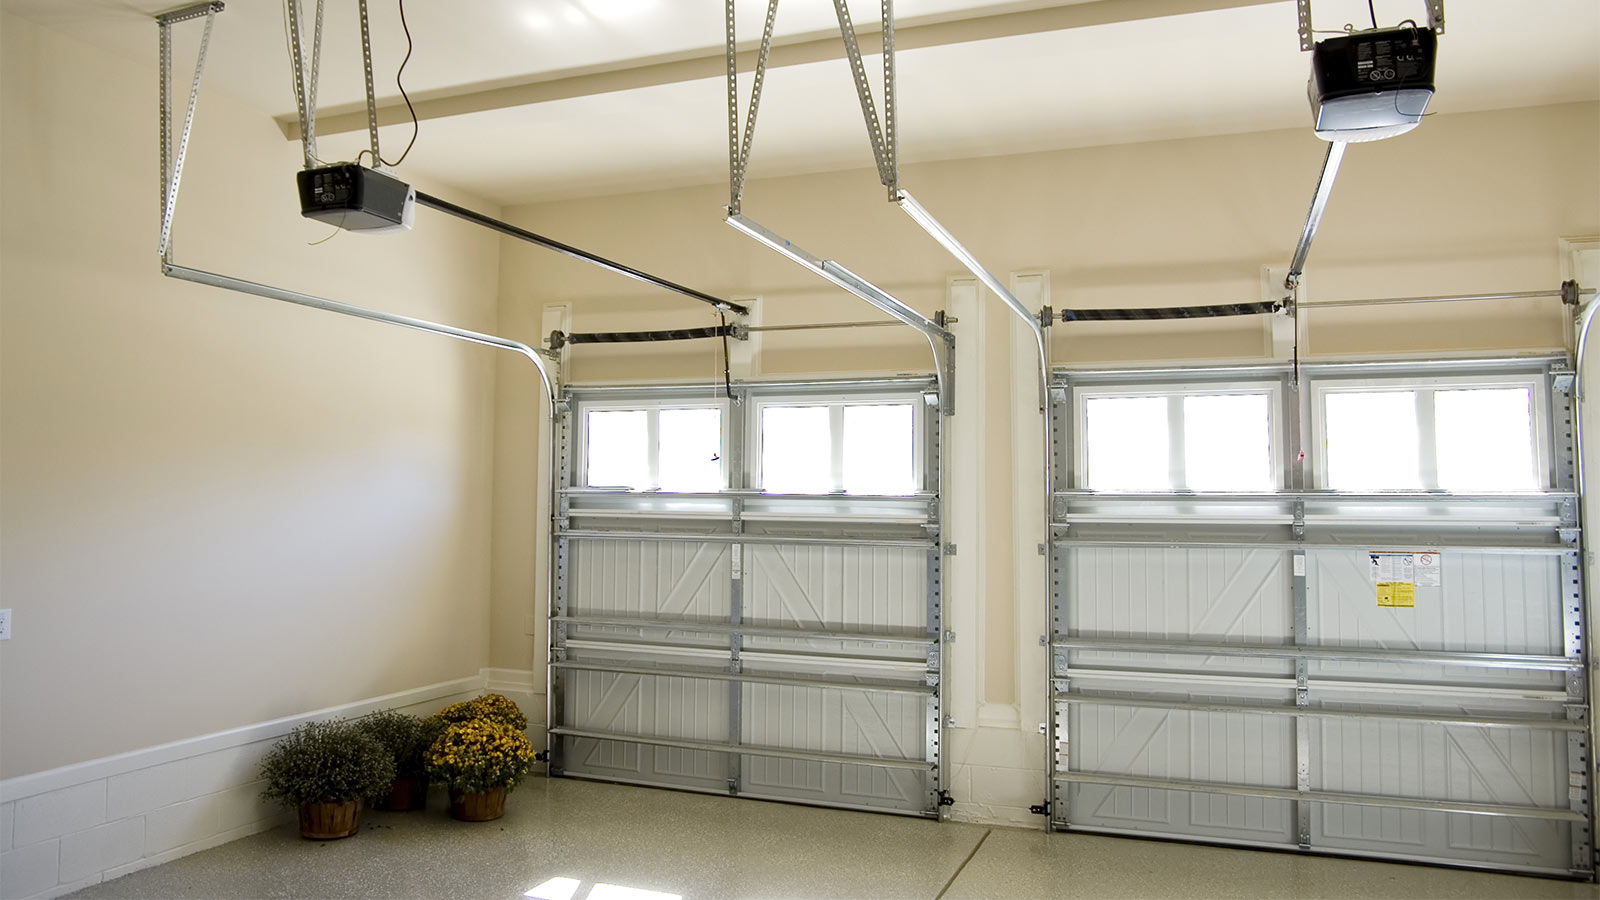 Sectional Garage Doors from Fire Shutters Suffolk suppliers.